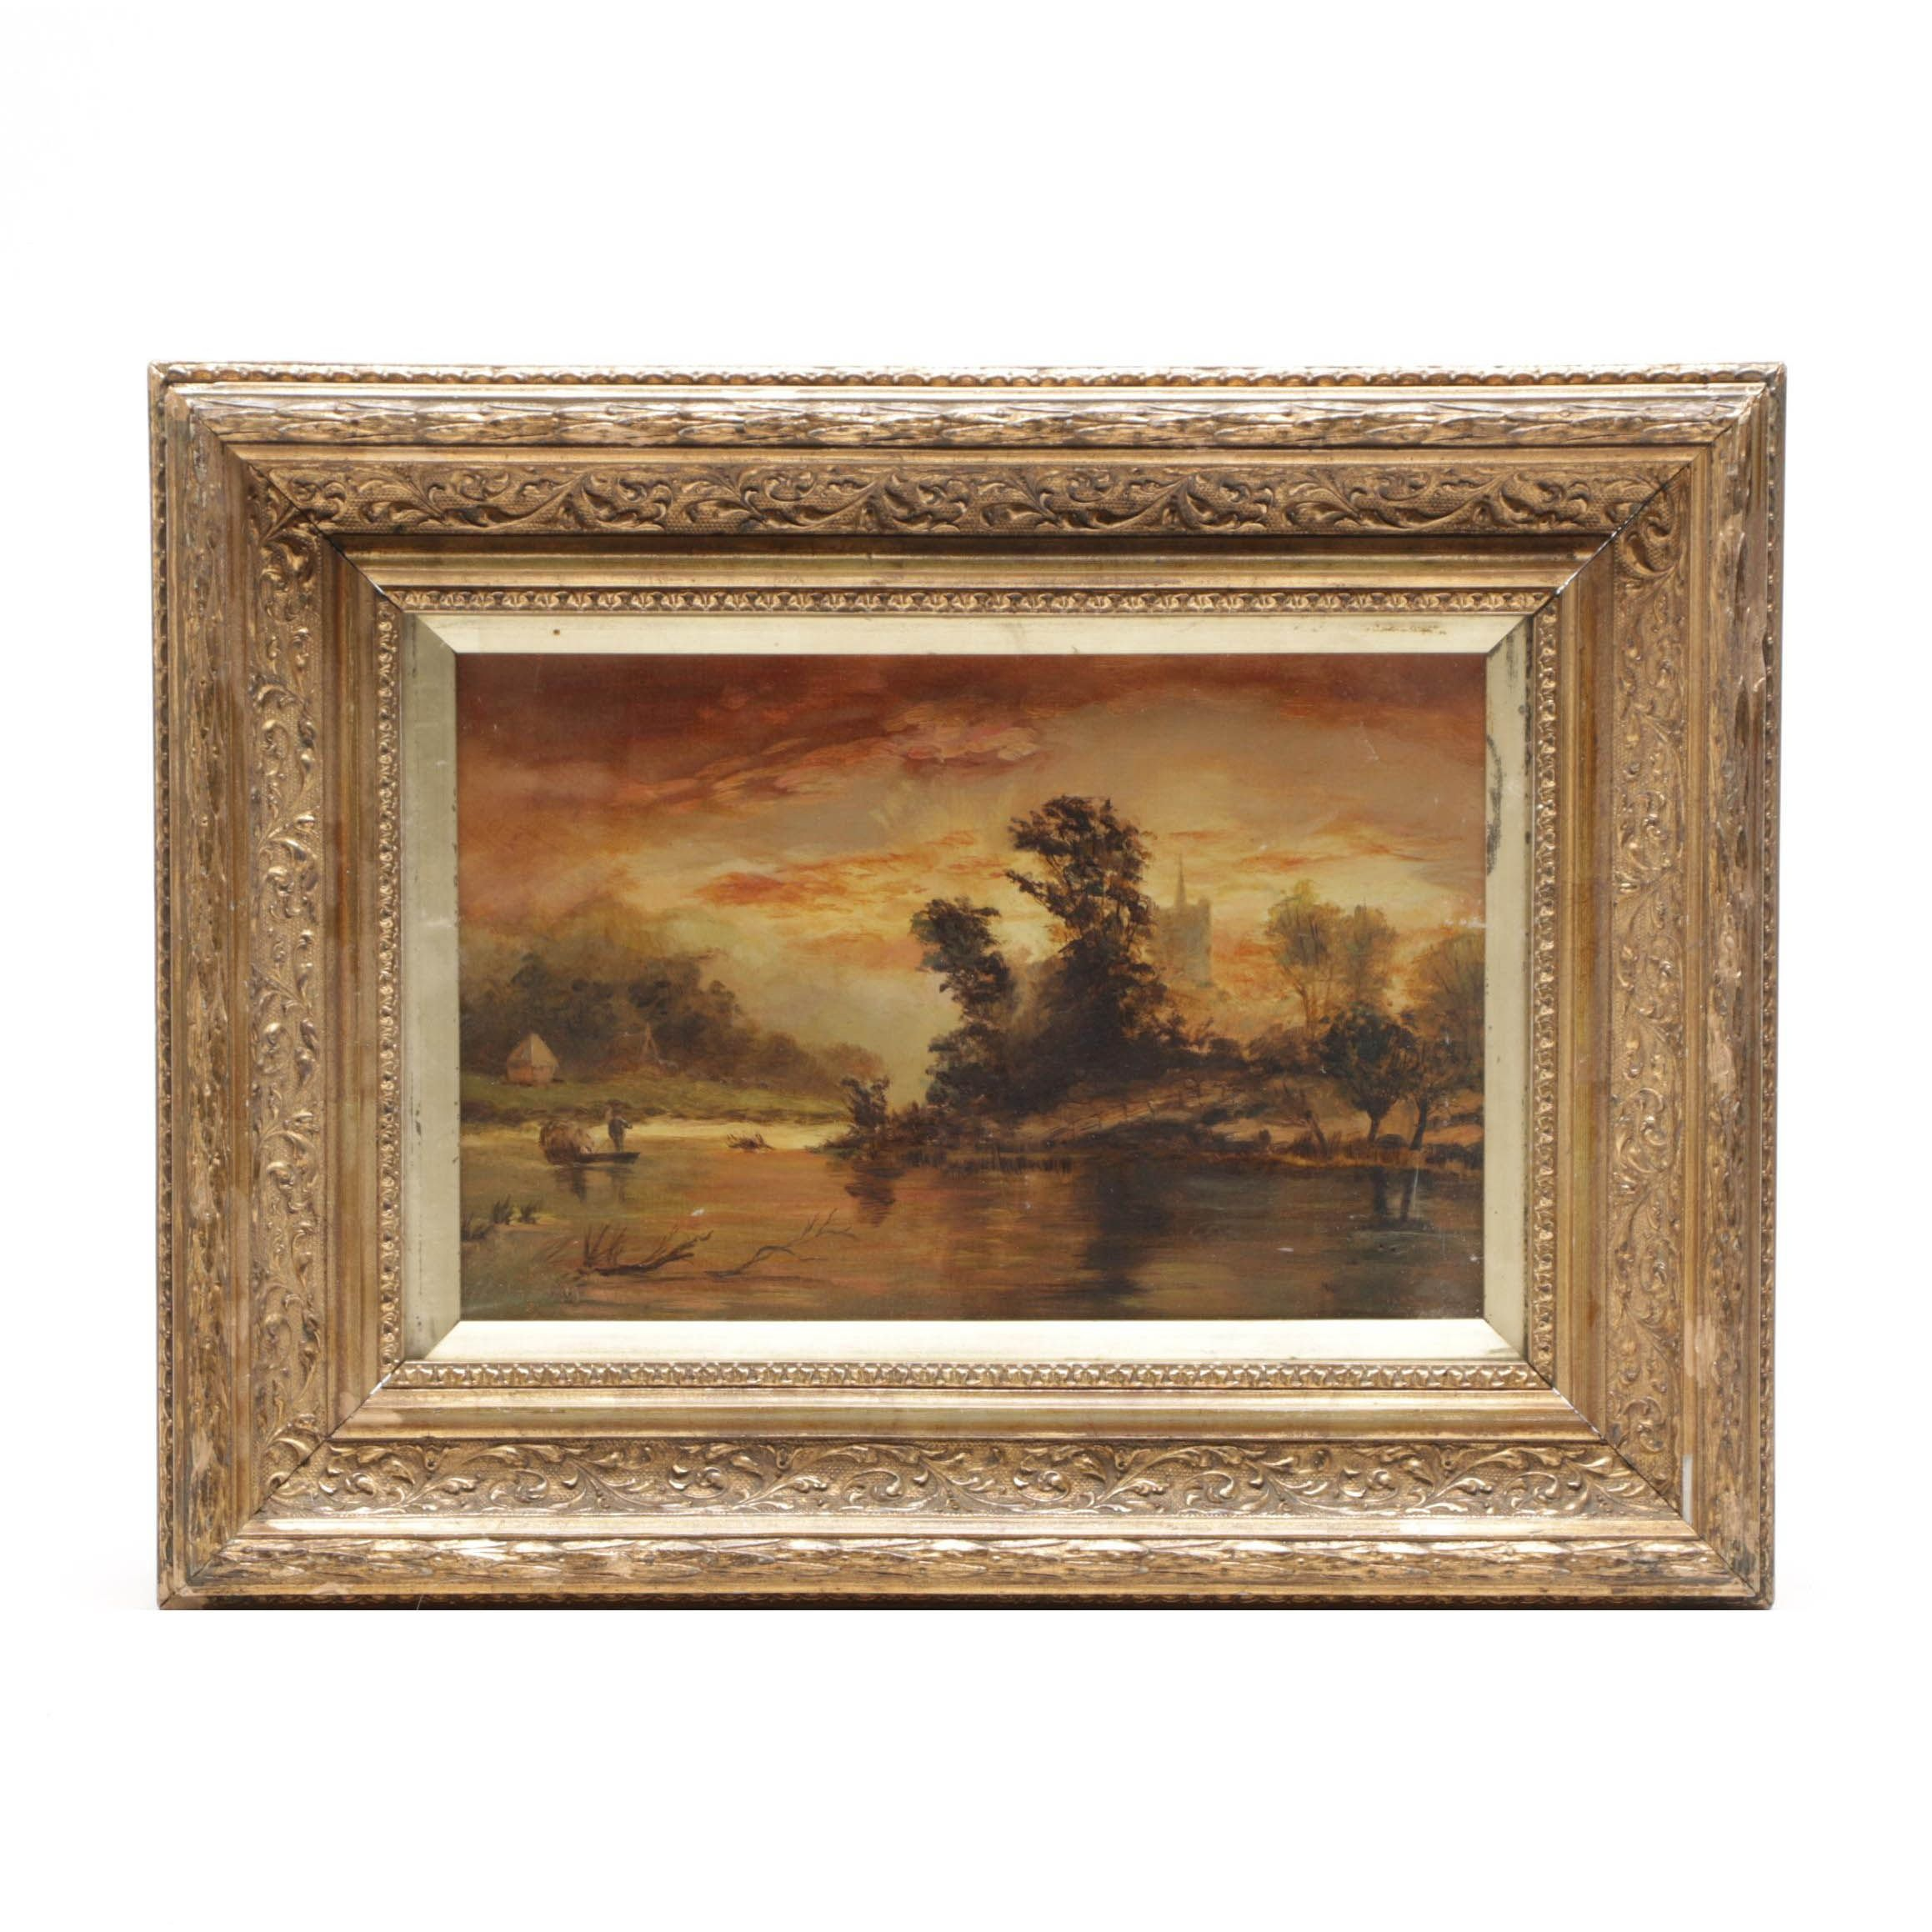 Antique Romantic Landscape Oil Painting